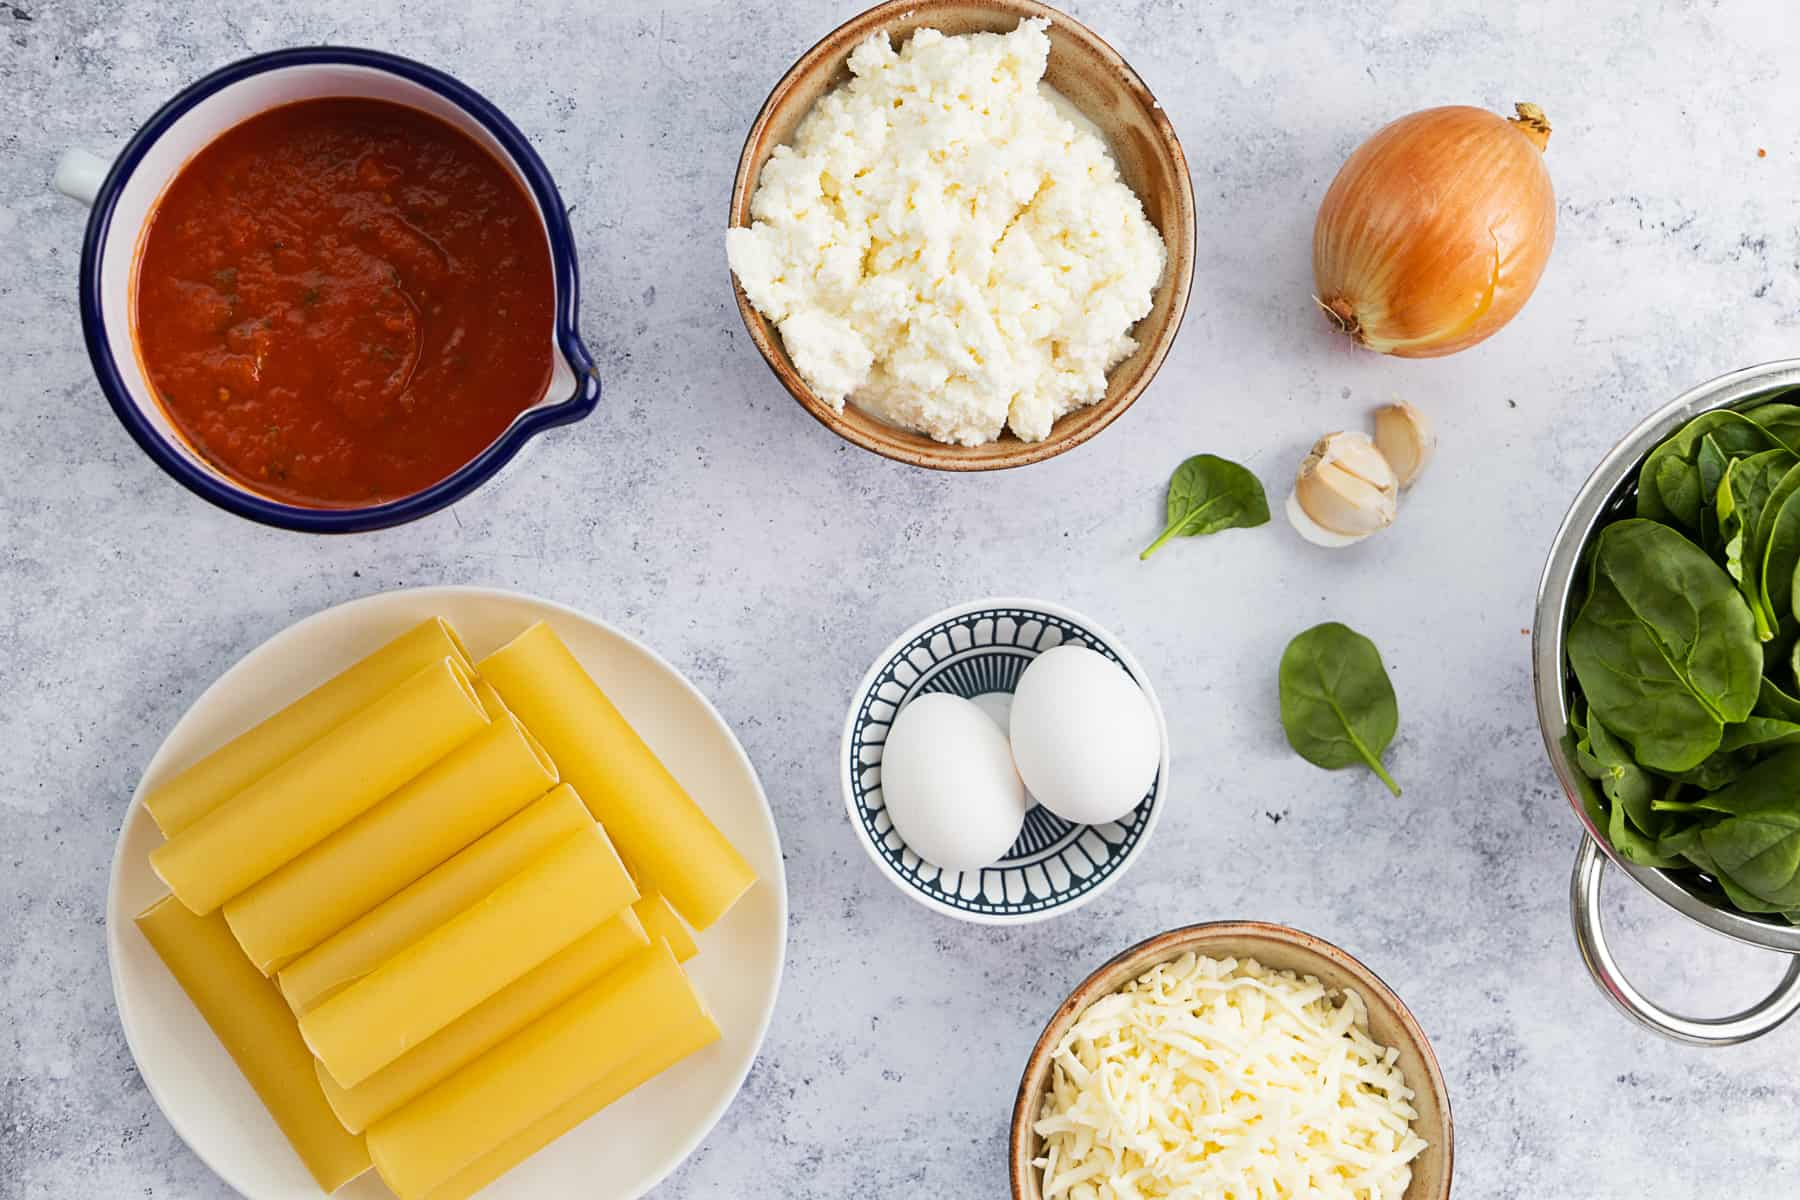 Top view of ingredients for cheese manicotti: pasta shells, tomato sauce, cheeses, eggs, onion, garlic and spinach.